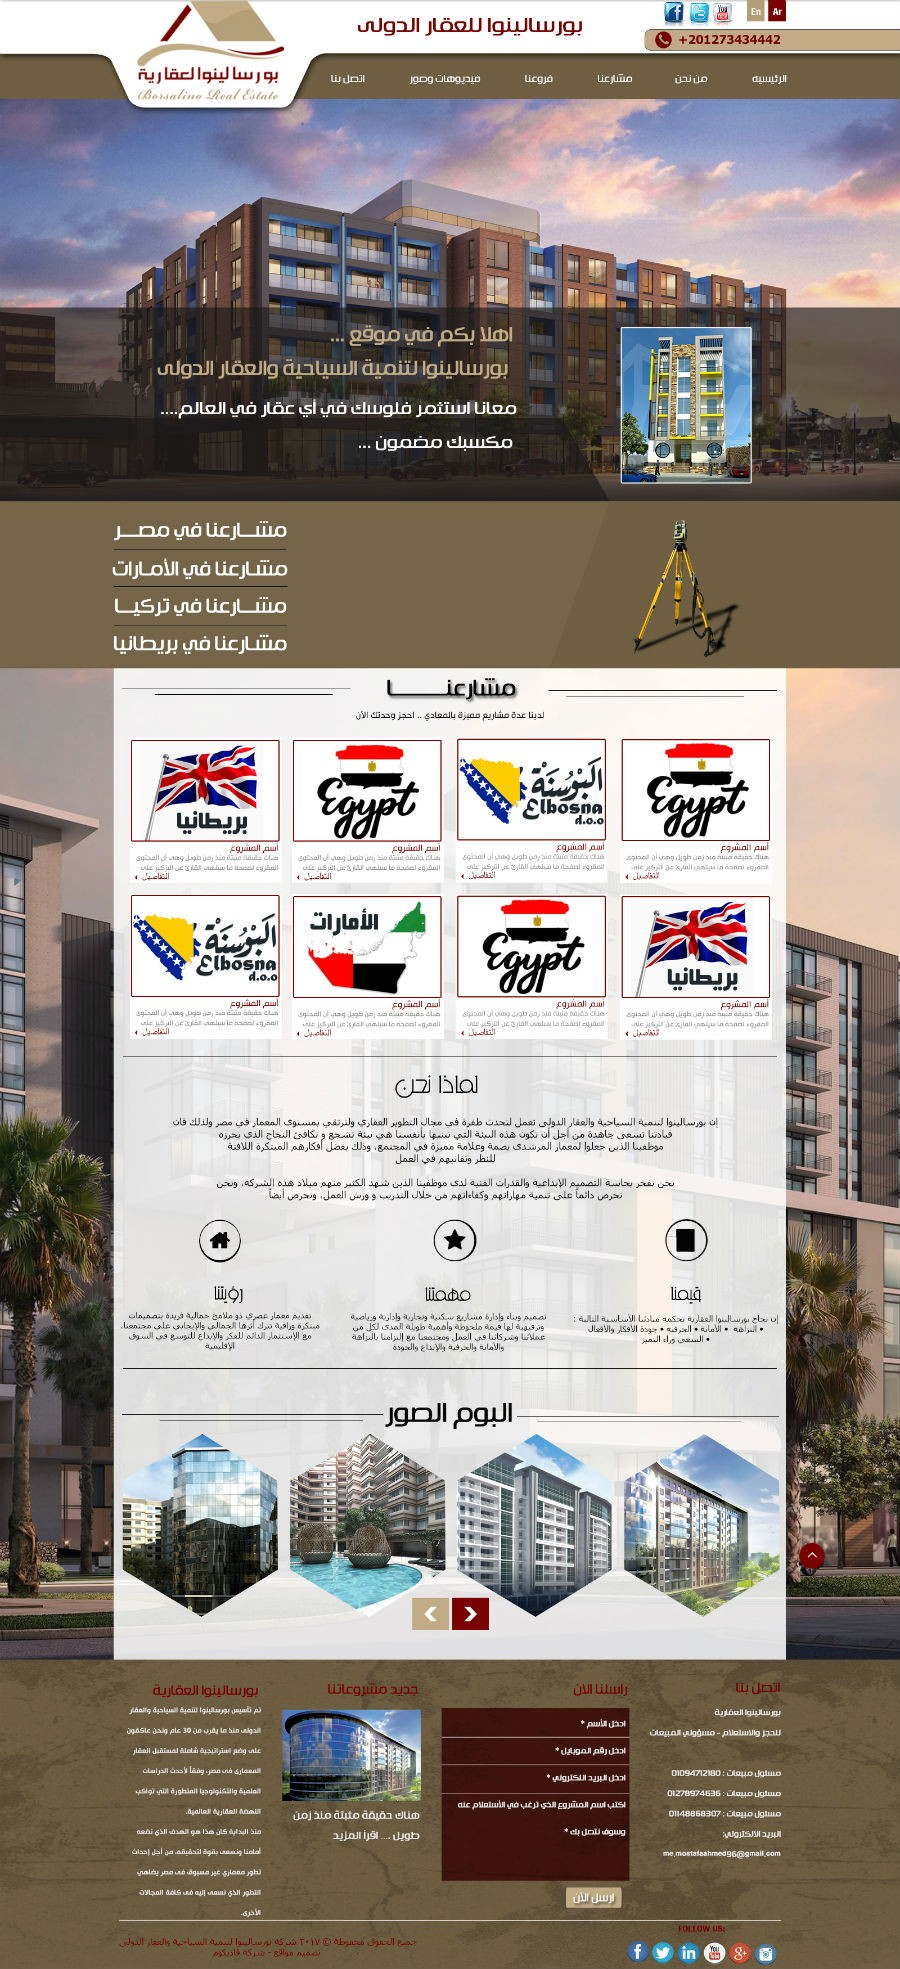 Borsalino International Realestate Website Design